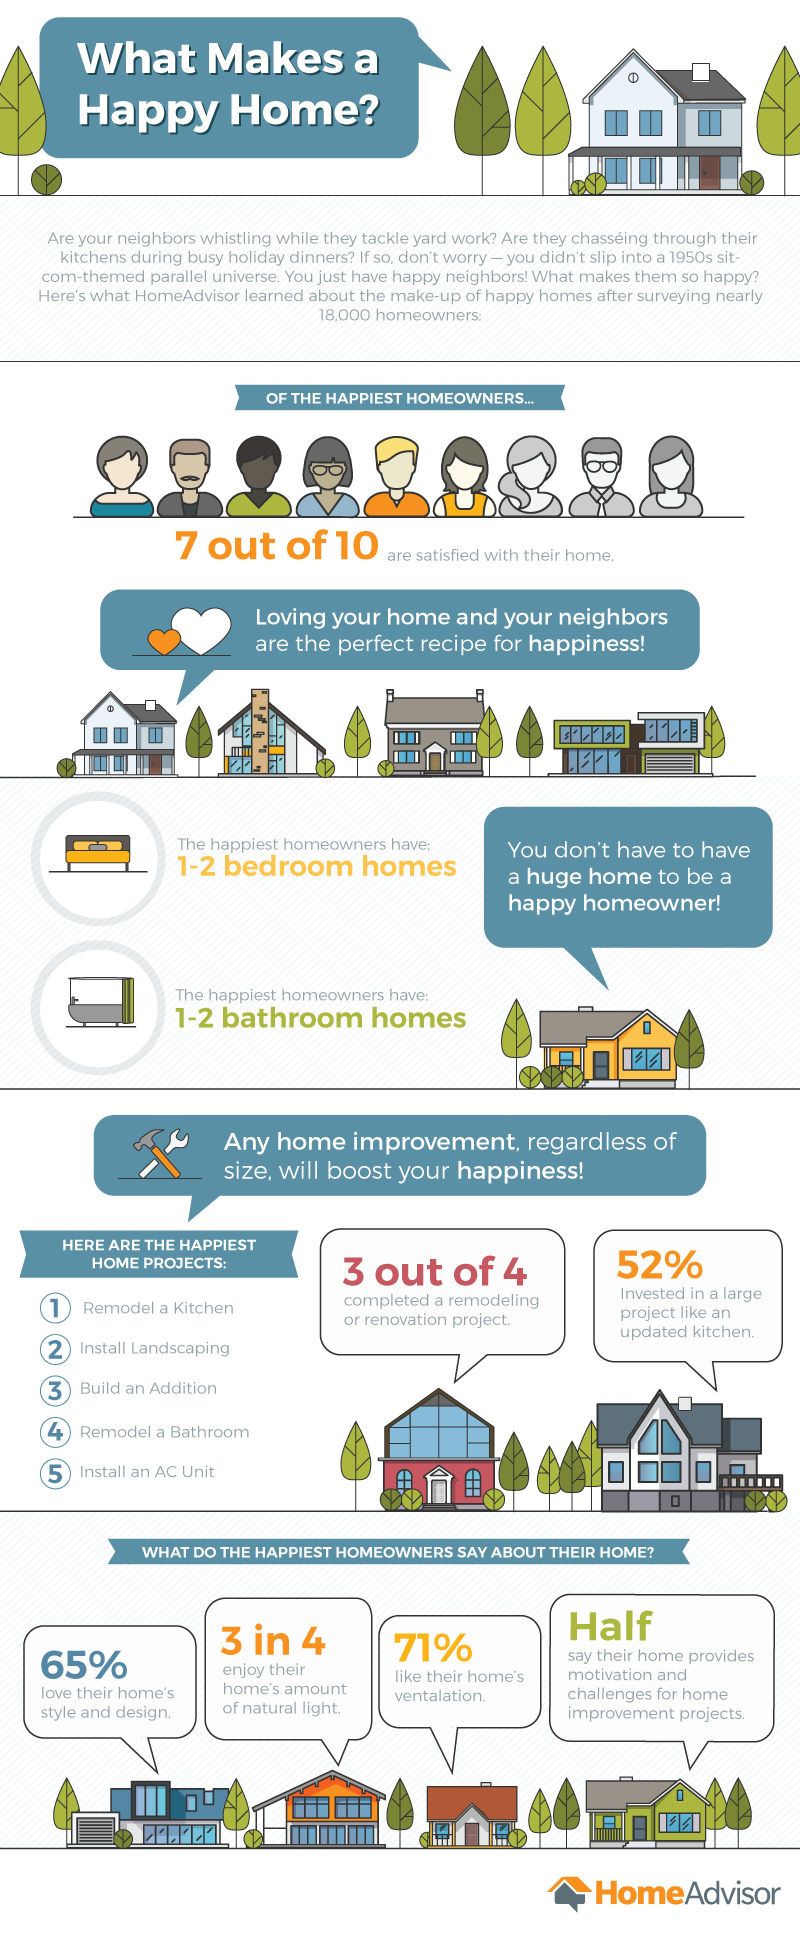 What Makes a Happy Home